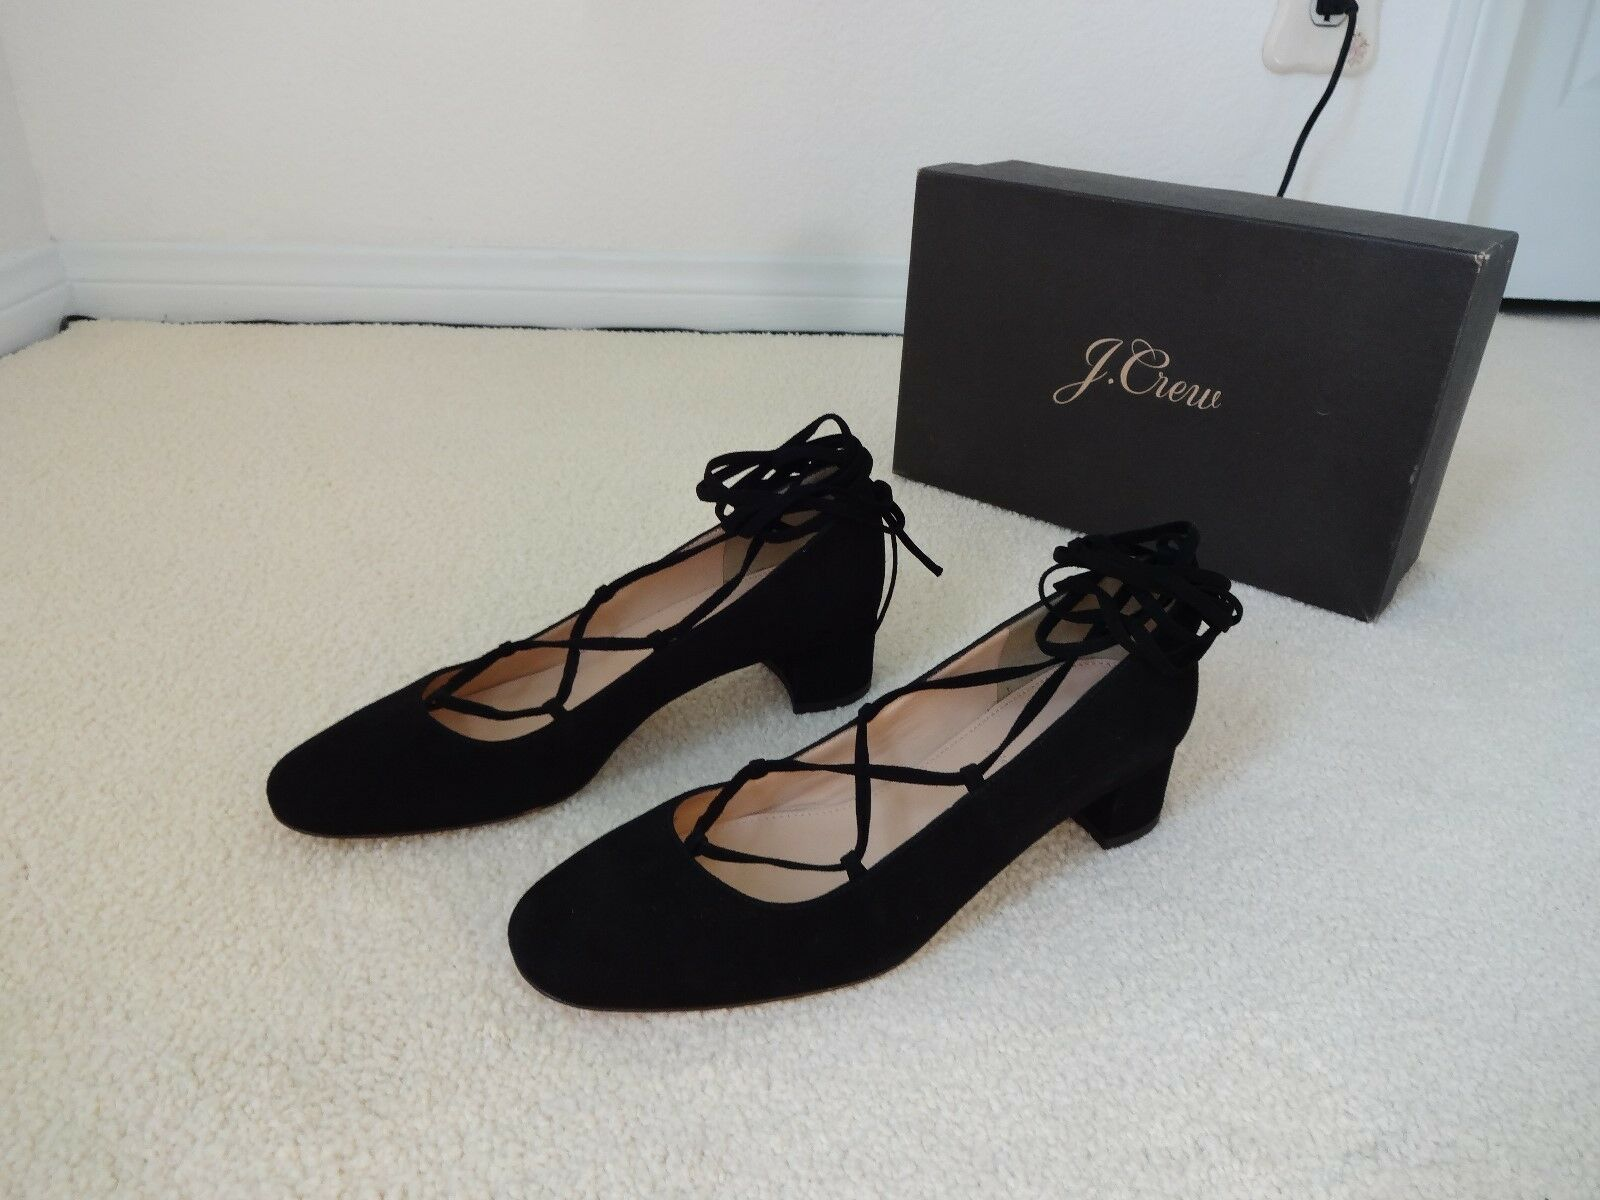 New J.Crew  Lace-up Heels in Suede F4867 Size 8M Made in